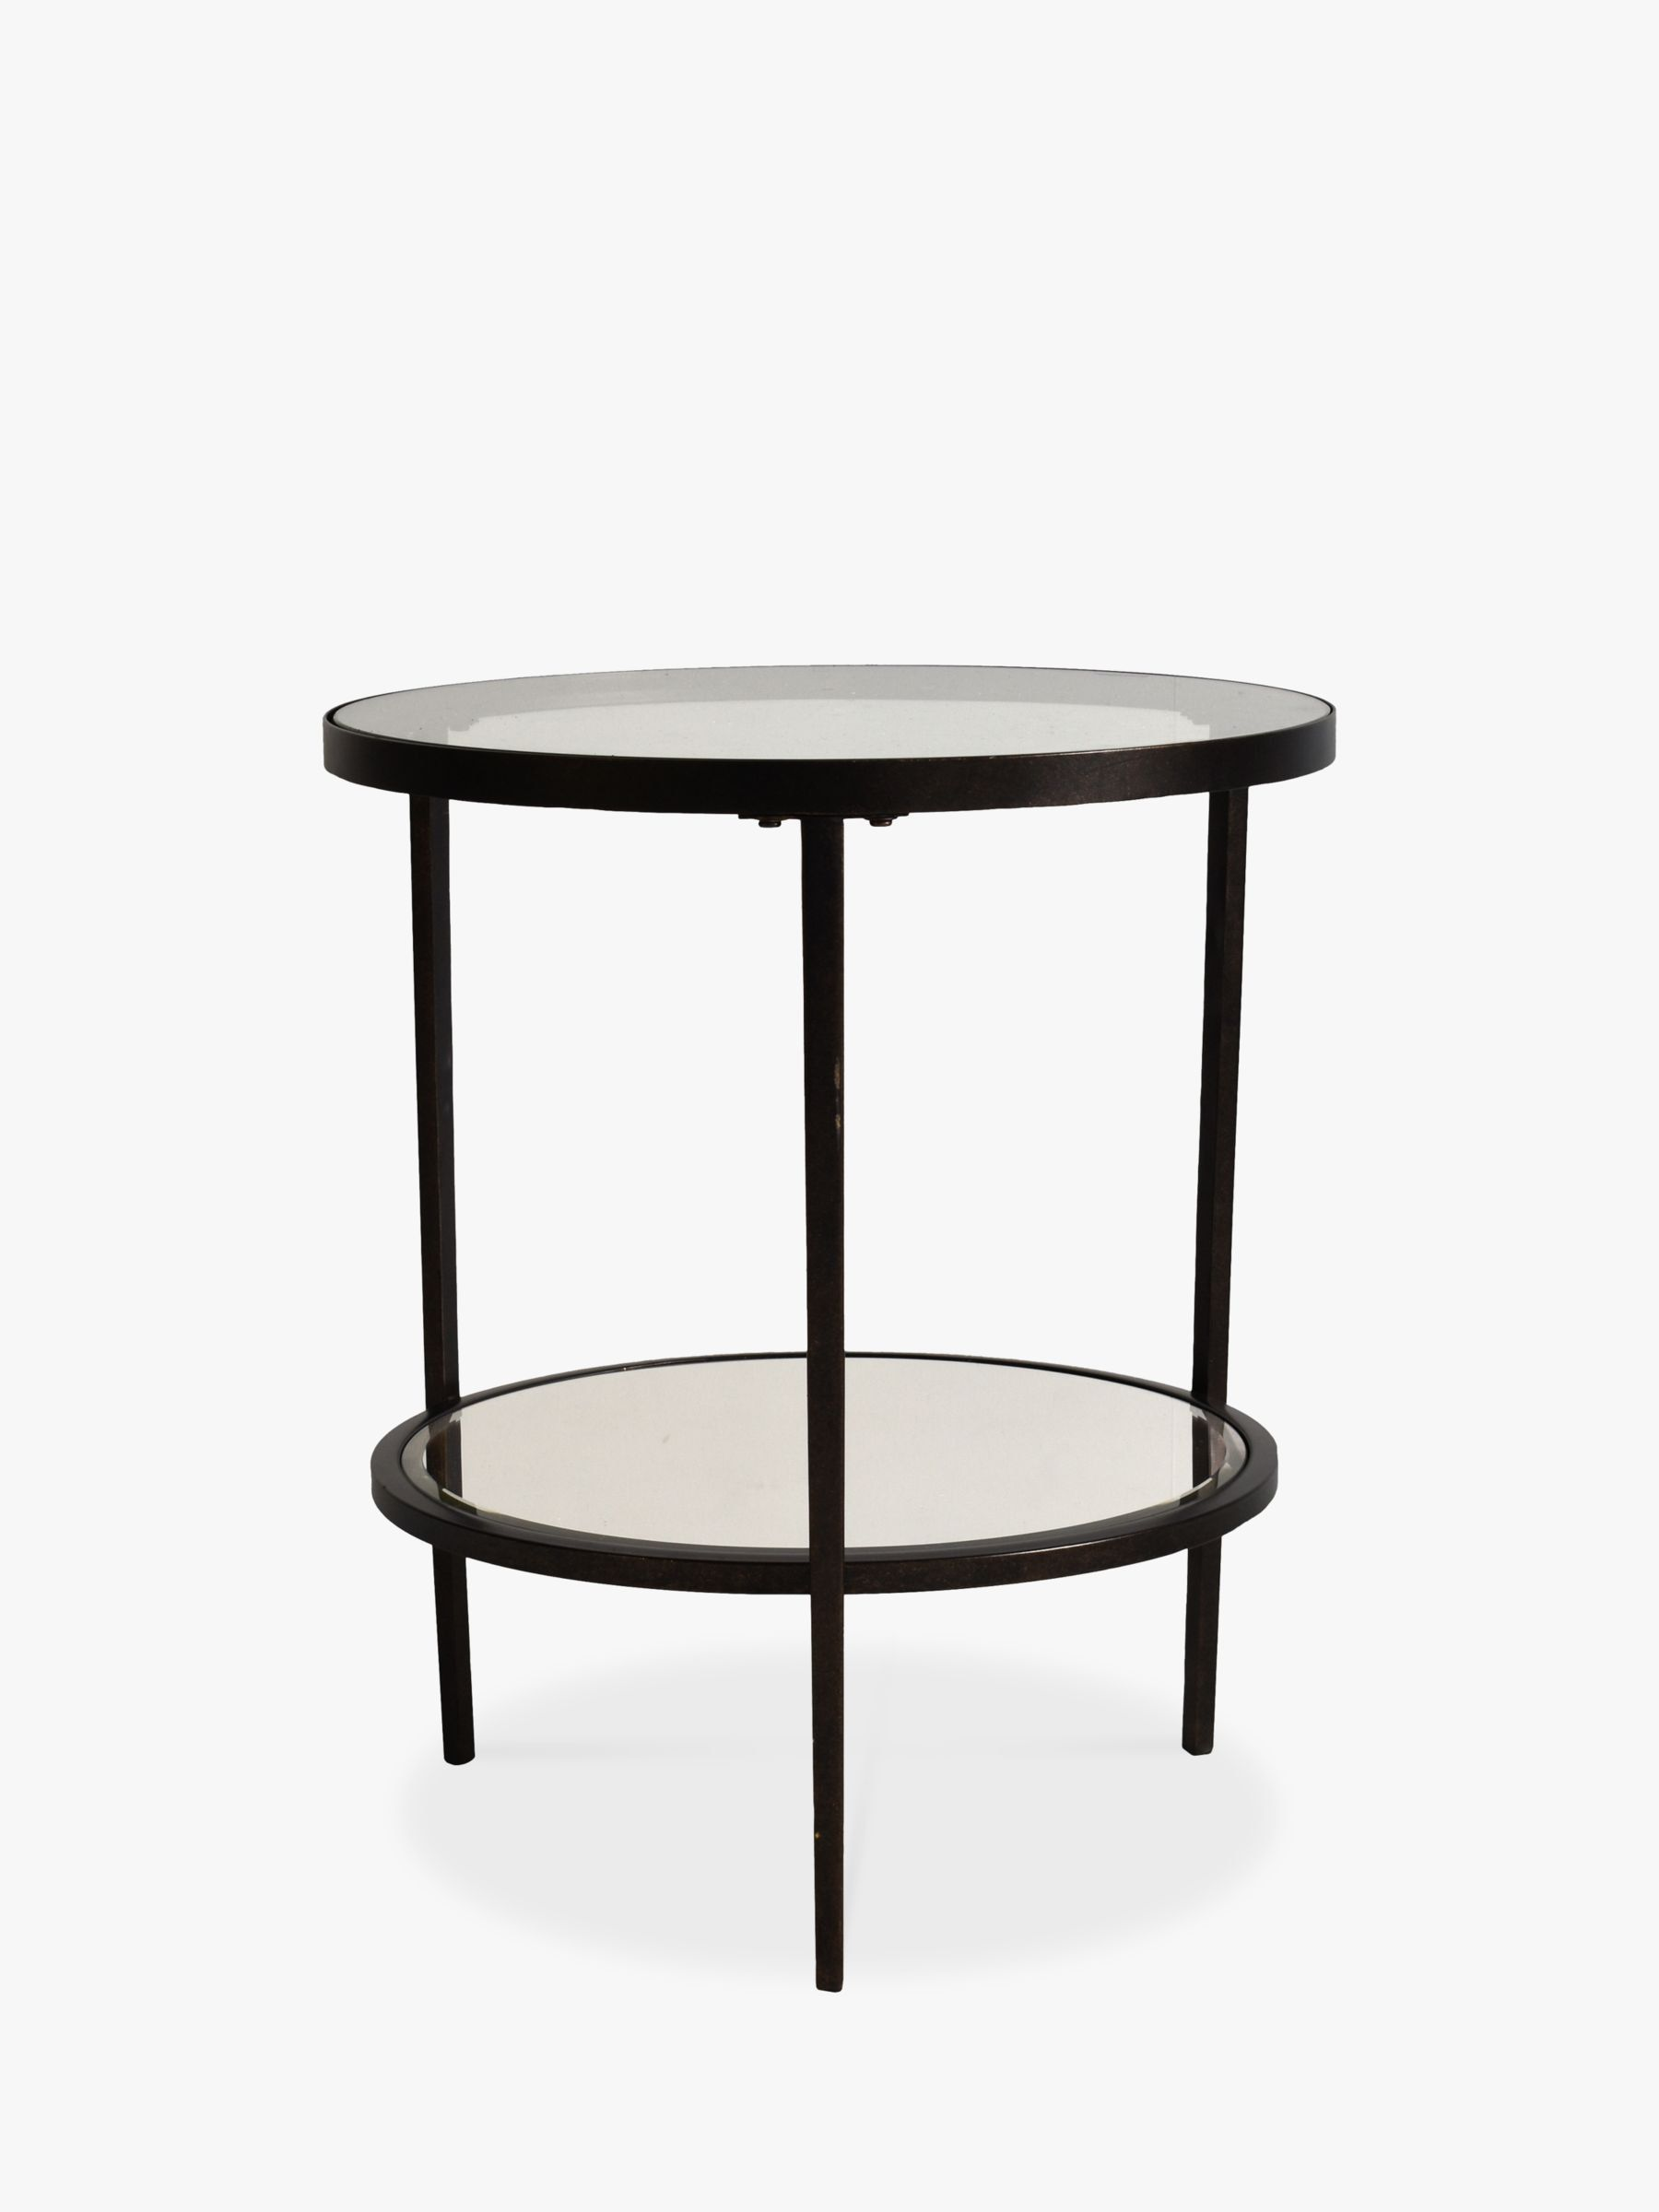 Hudson Living Glass Round Side Table Round Side Table Small Round Side Table Table